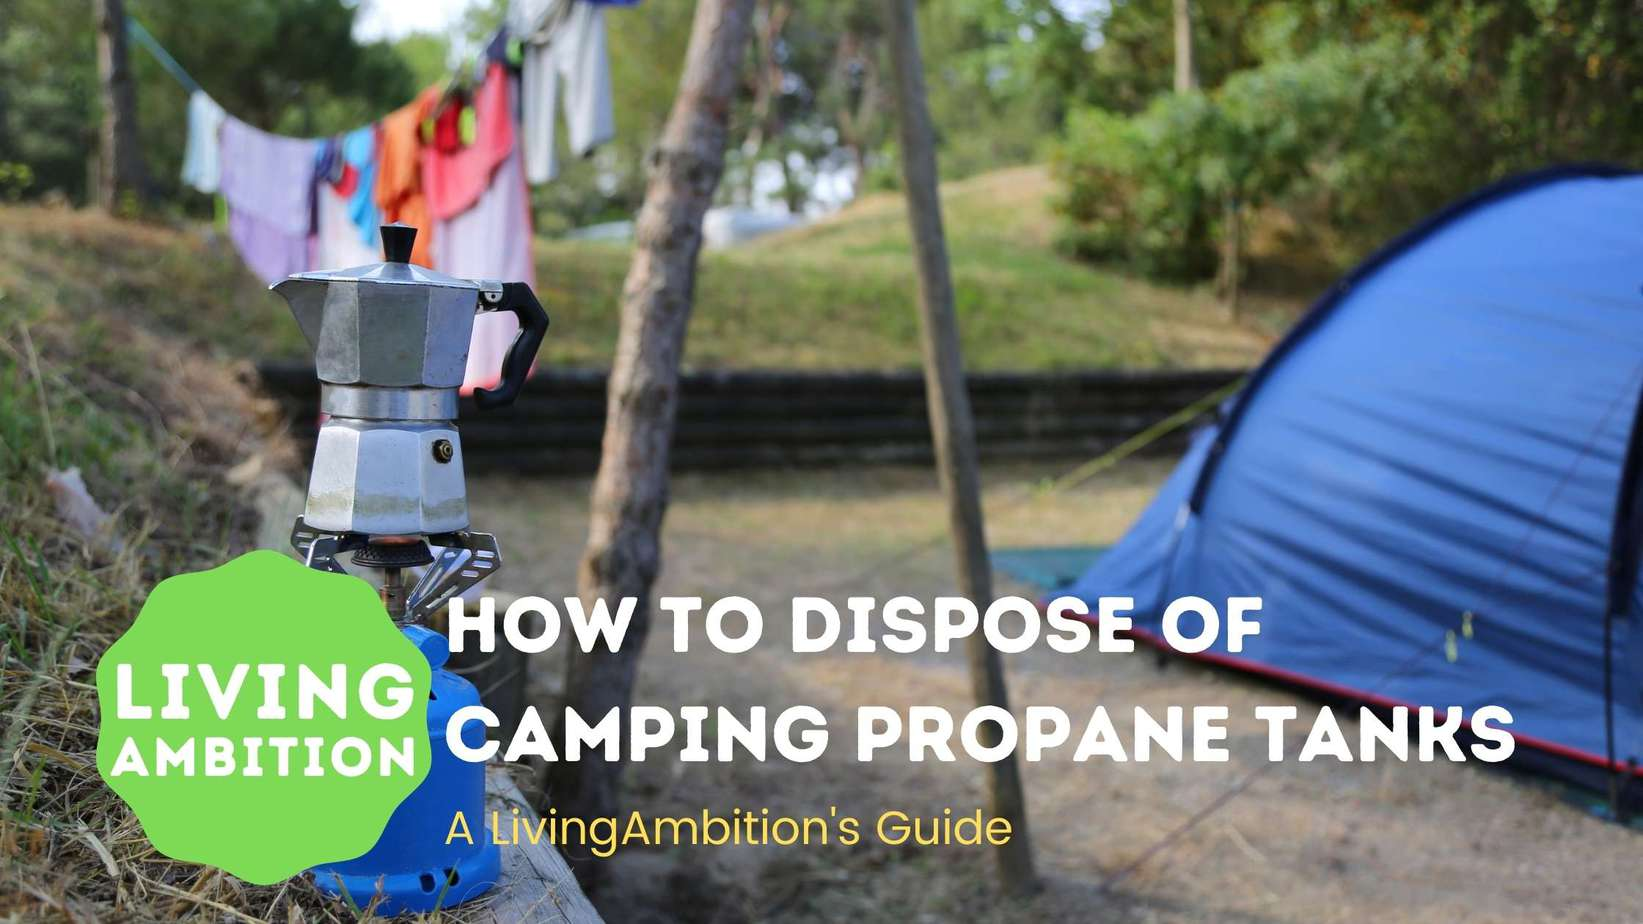 how to dispose of camping propane tanks